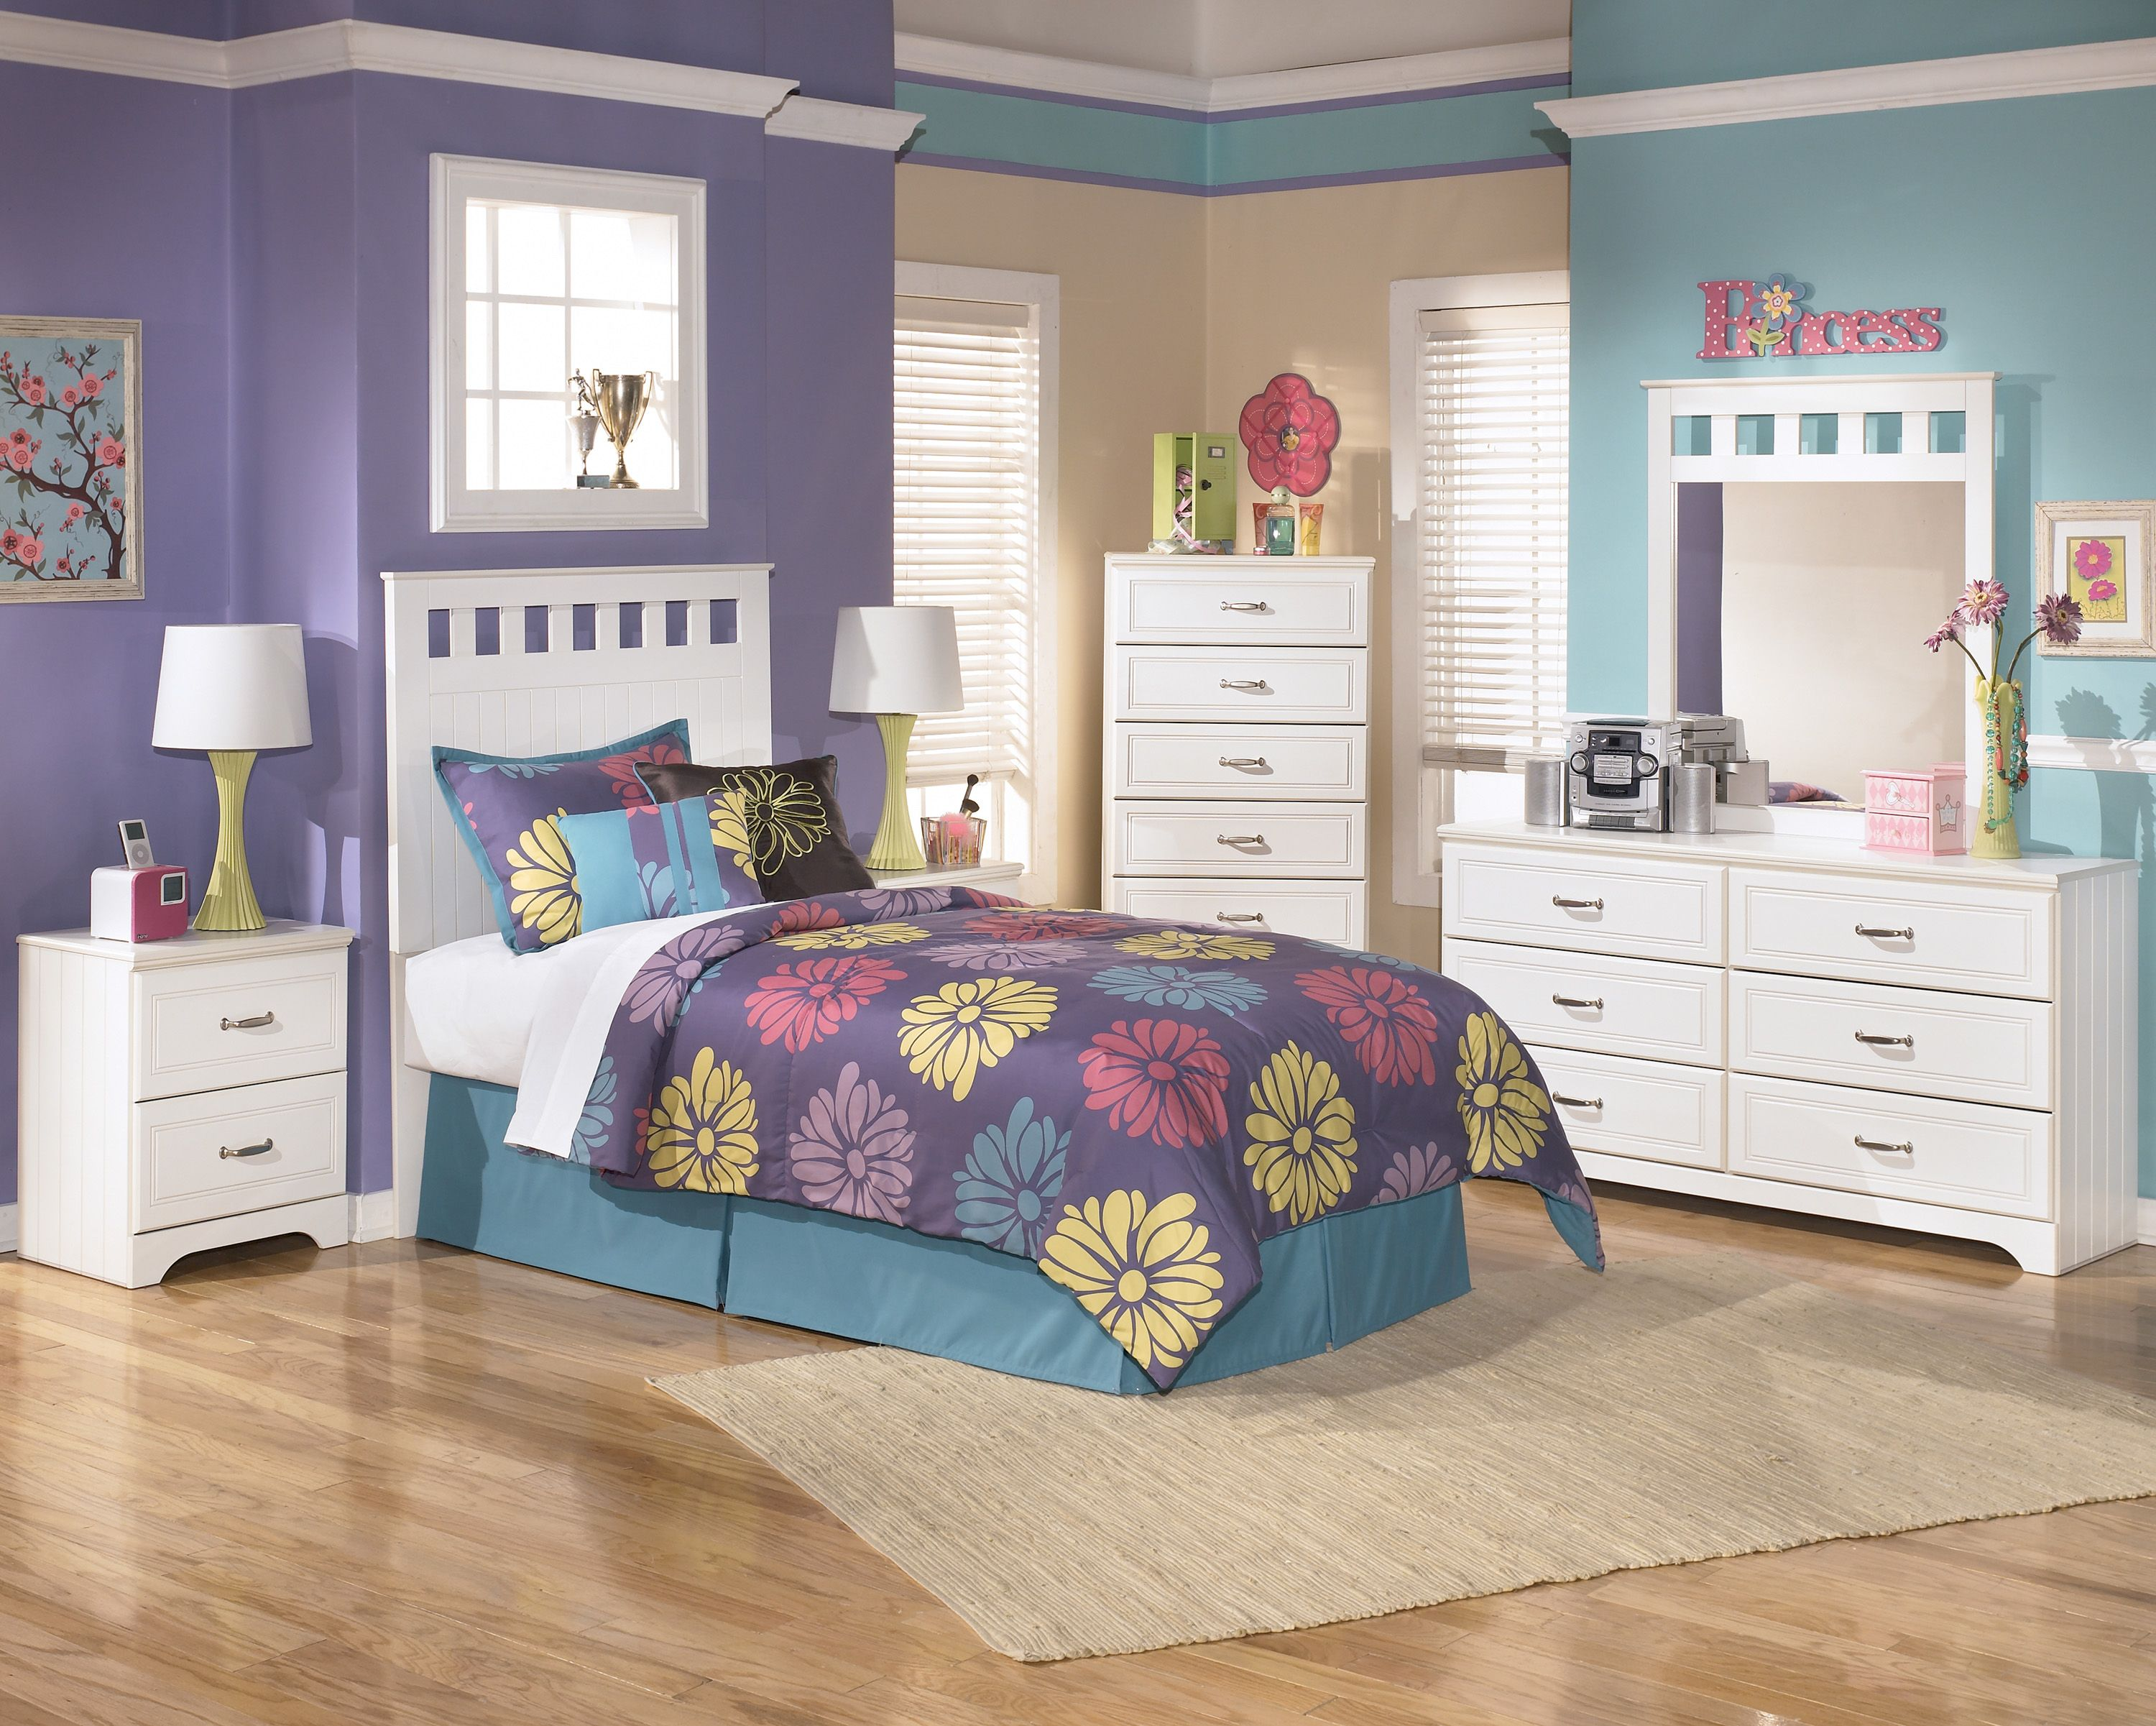 toddlers bedroom furniture. Cool Kids Furniture Great Bedroom Kid Sets/ Toddlers E